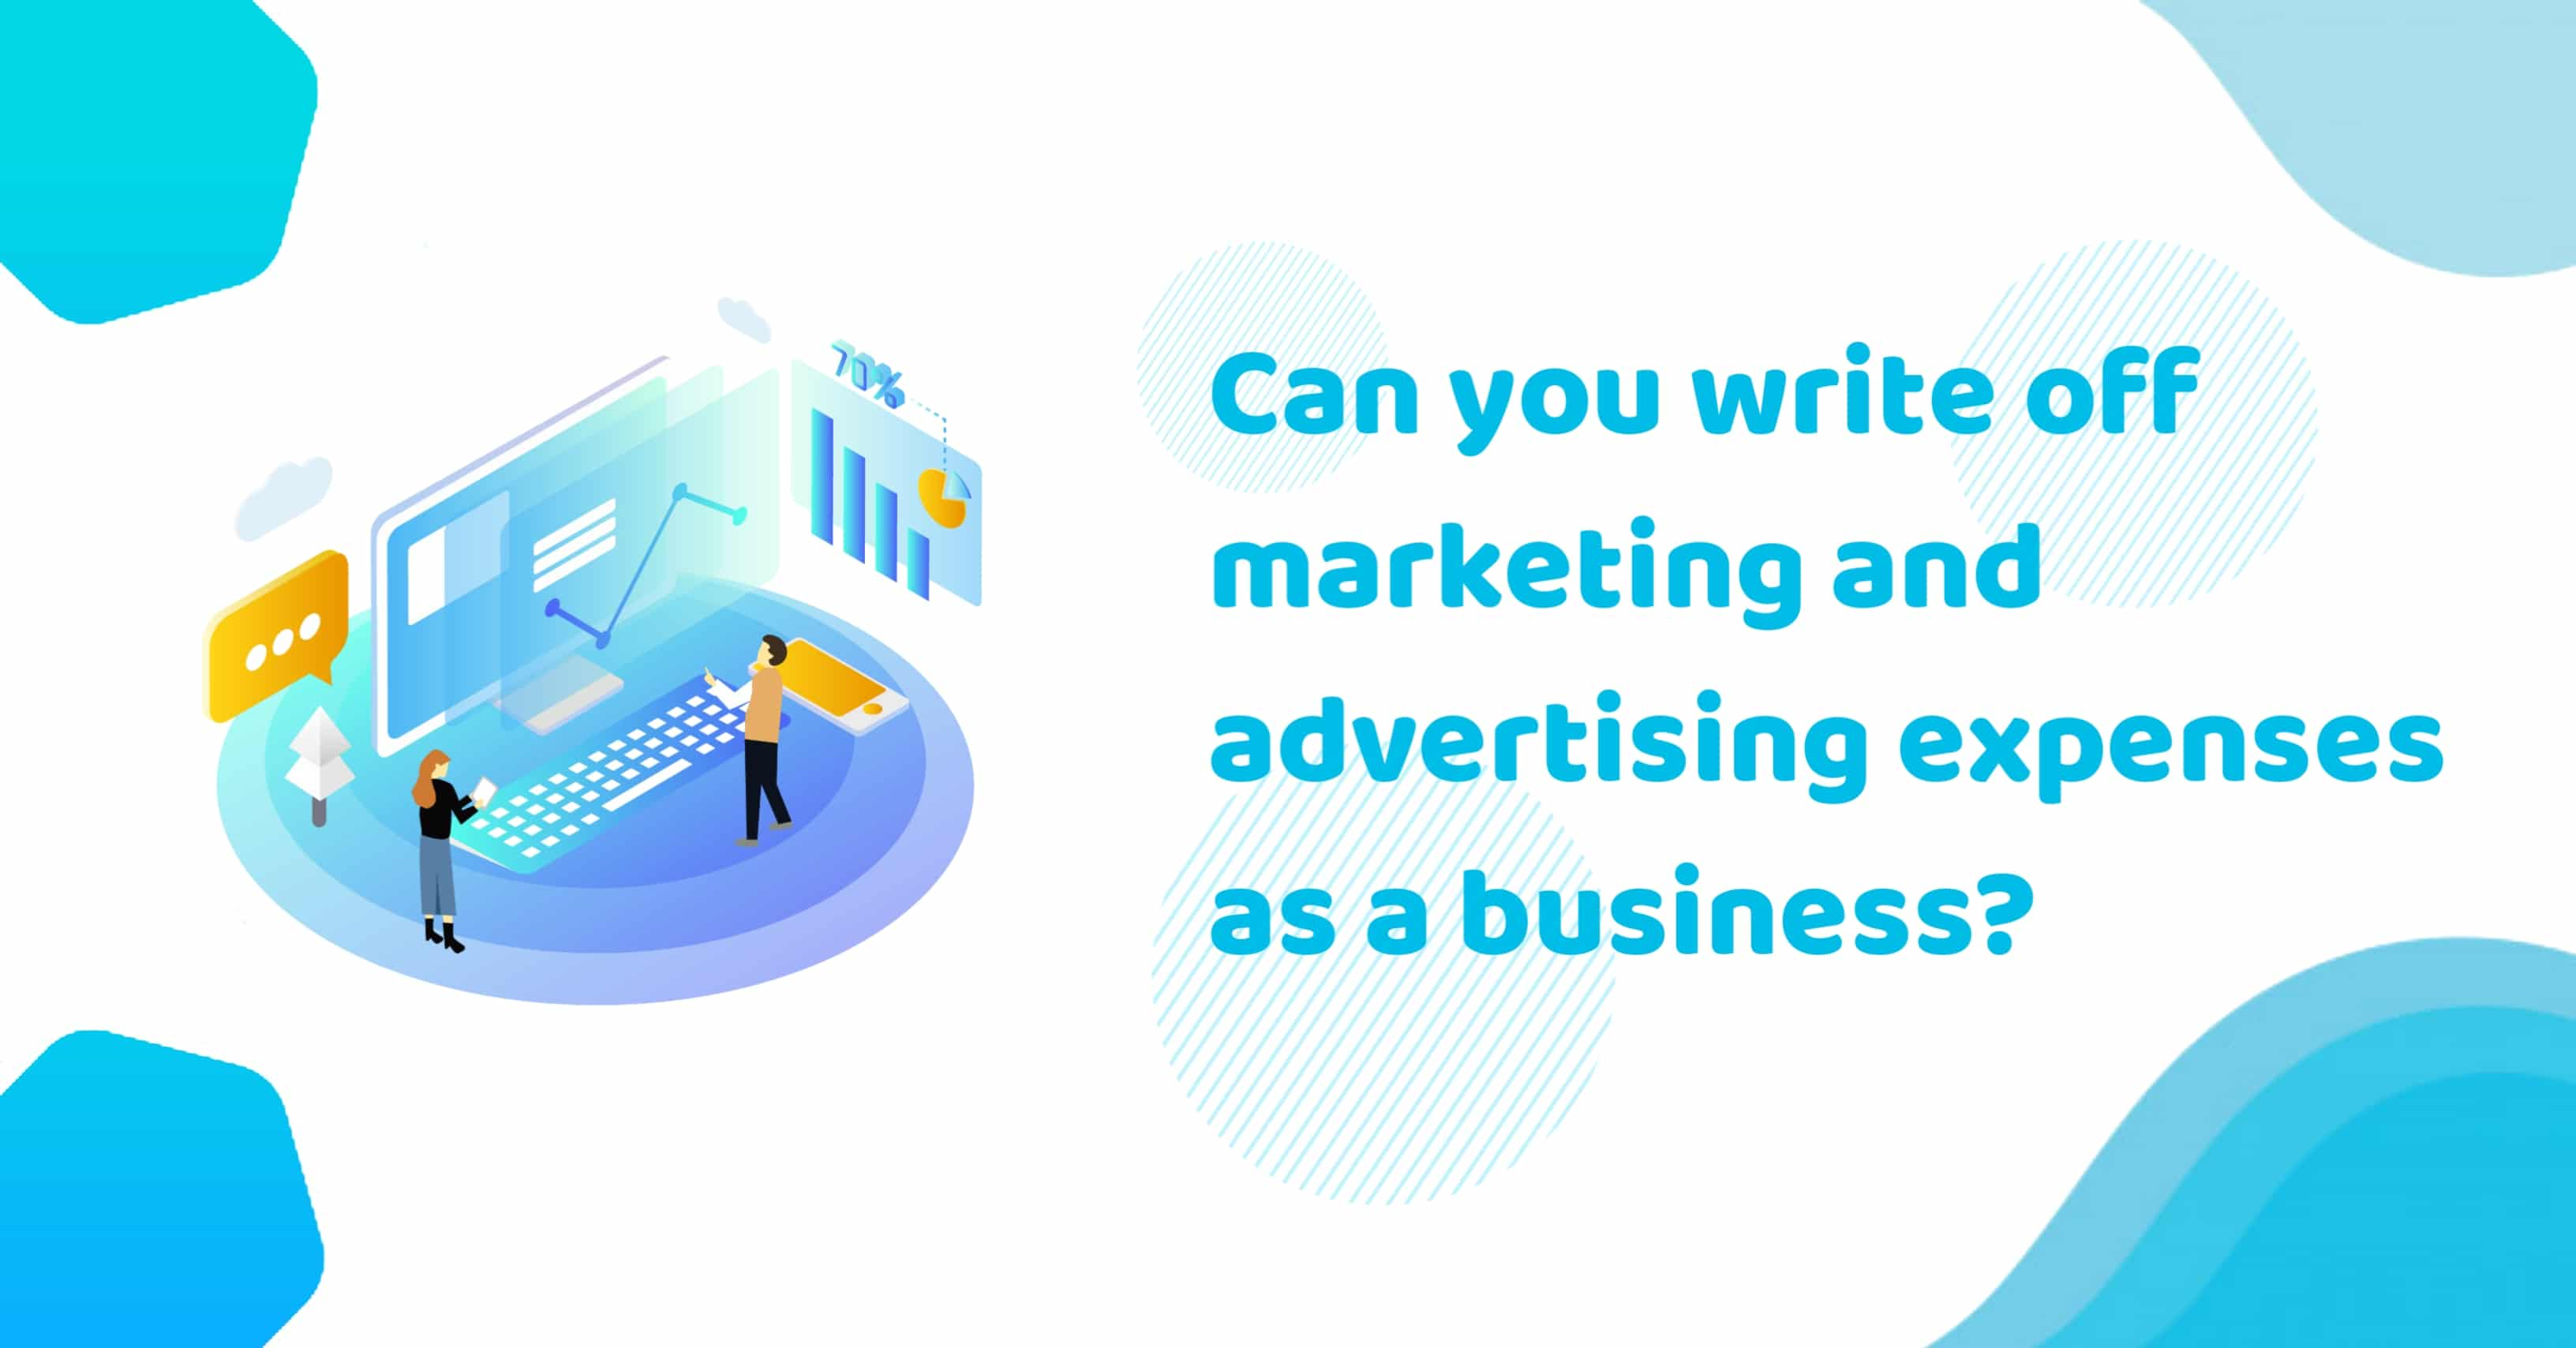 Can You Write Off Marketing And Advertising Expenses As A Business?